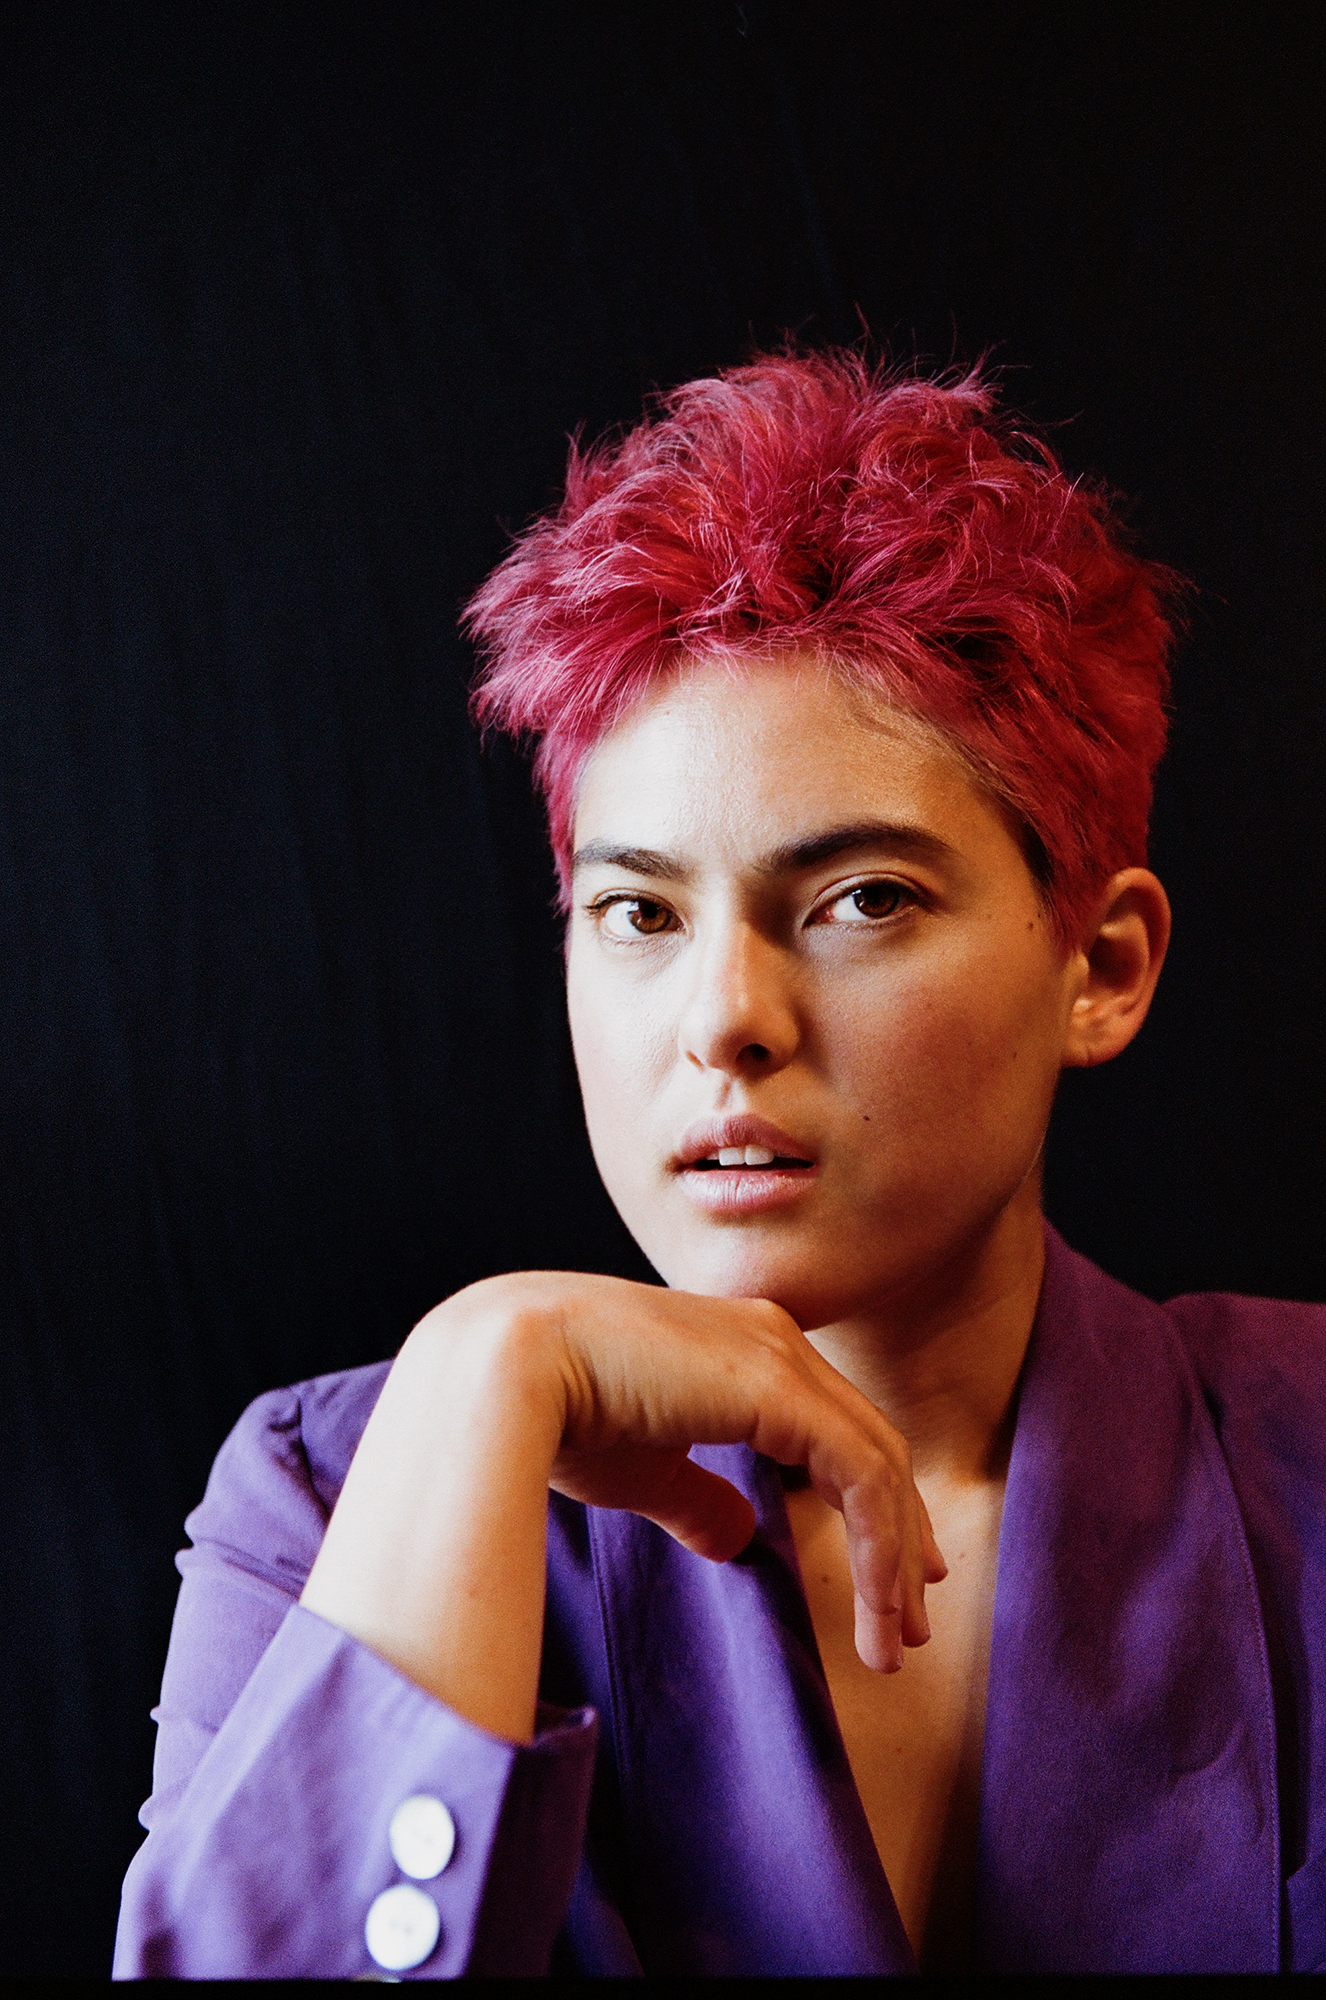 05. MiyaFollick_May28th2019_NottingHill_NatMichele_000032420030.jpg